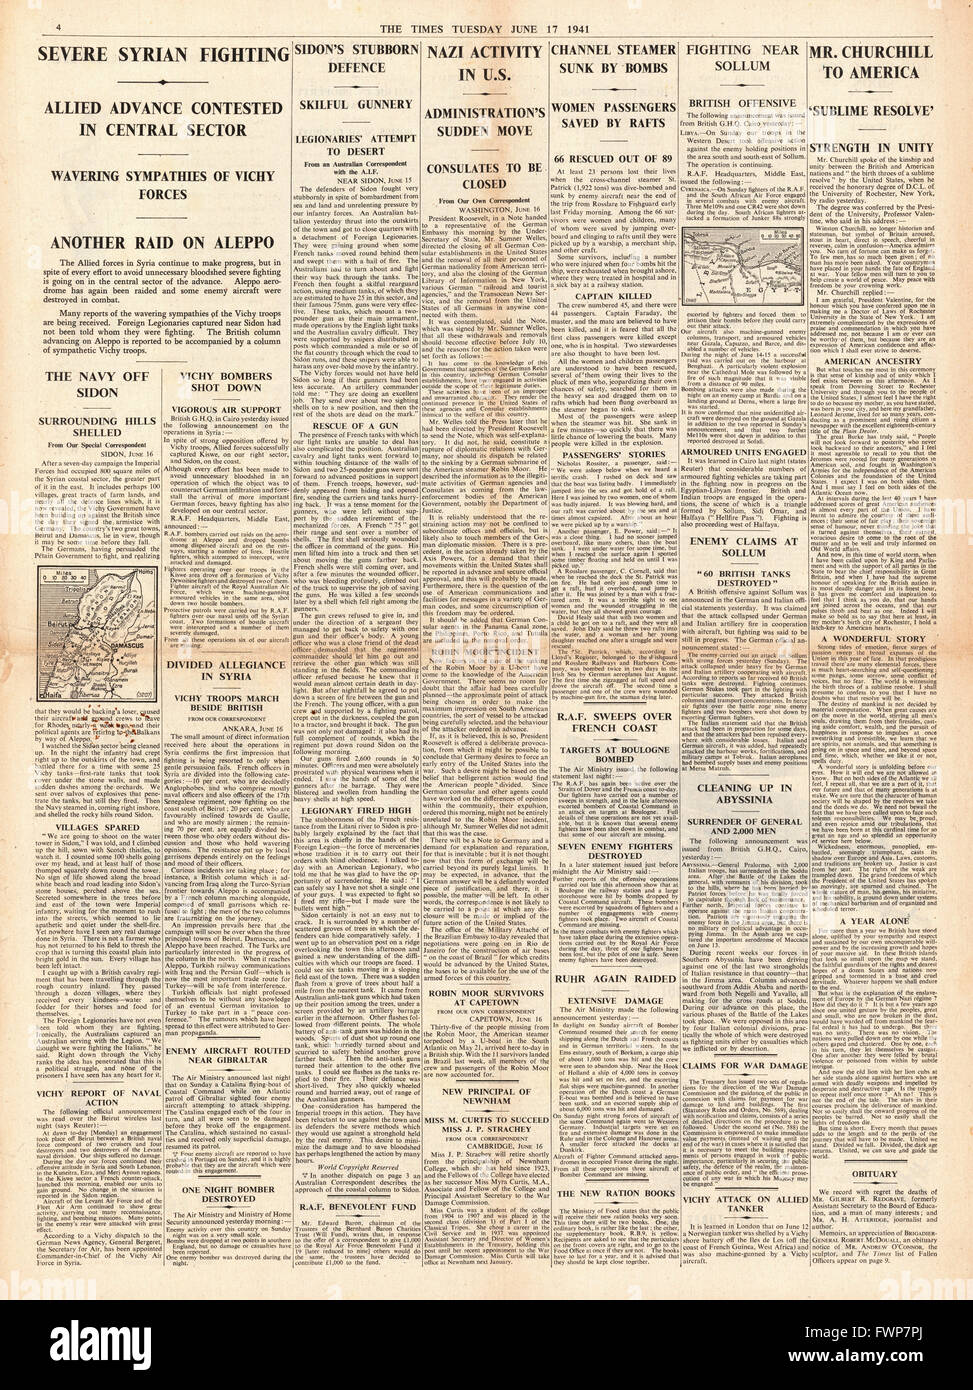 1941 page 4 The Times Cross Channel Steamer St.Patrick sunk by Luftwaffe Bombers off Pembrokeshire coast, Battle - Stock Image